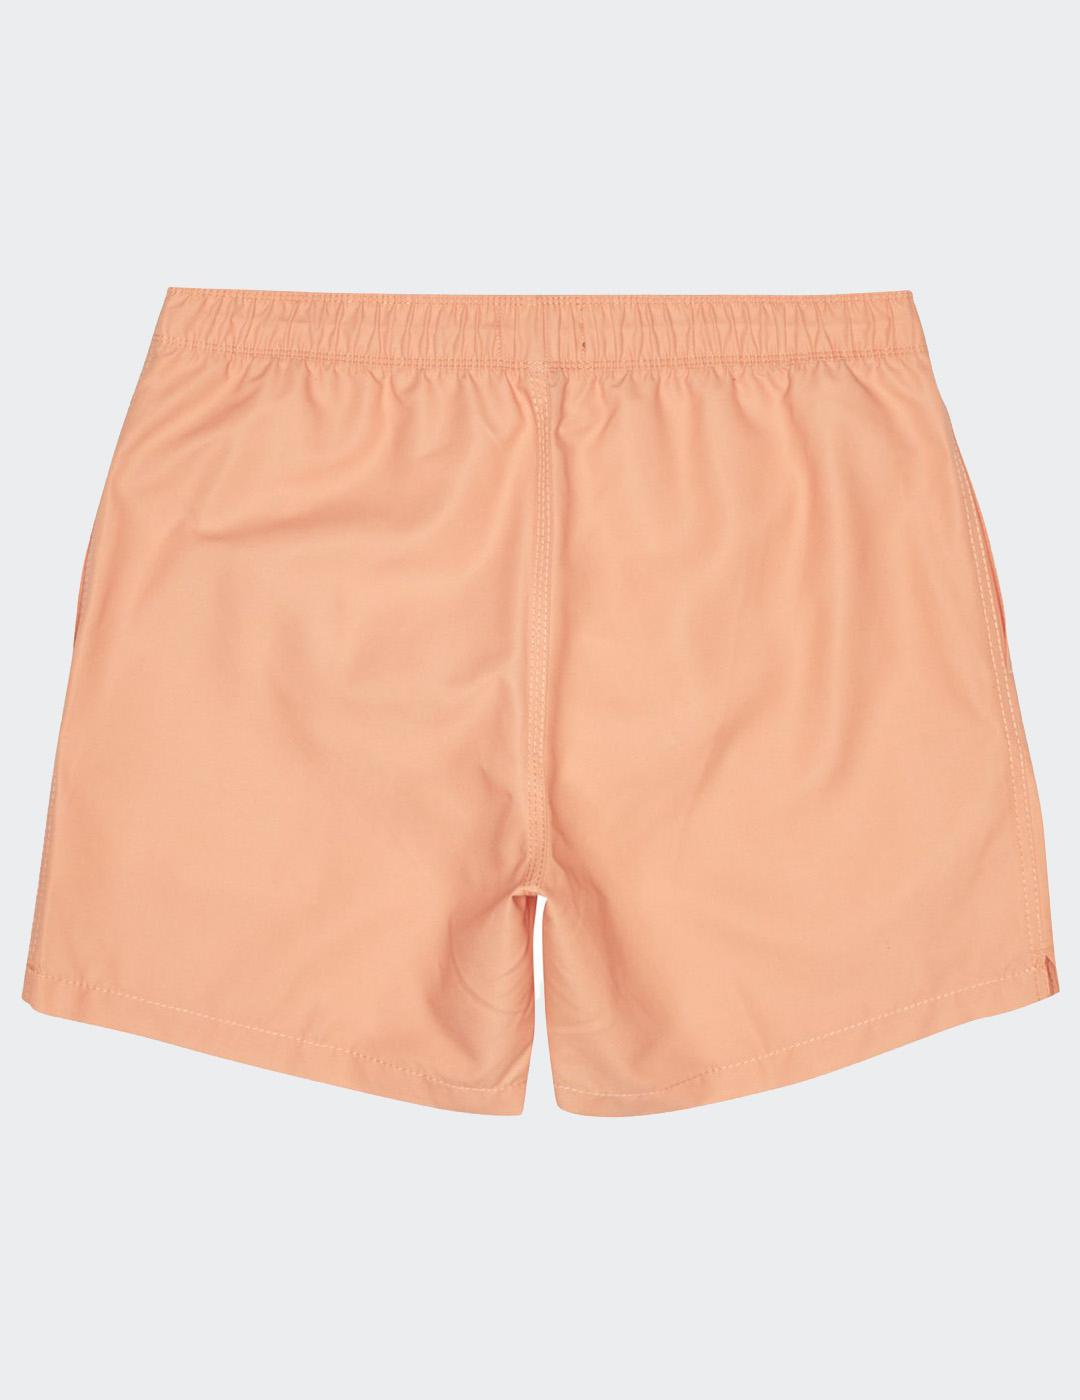 Bañador Billabong ALL DAY LB 16' BOARDSHORT neon melon